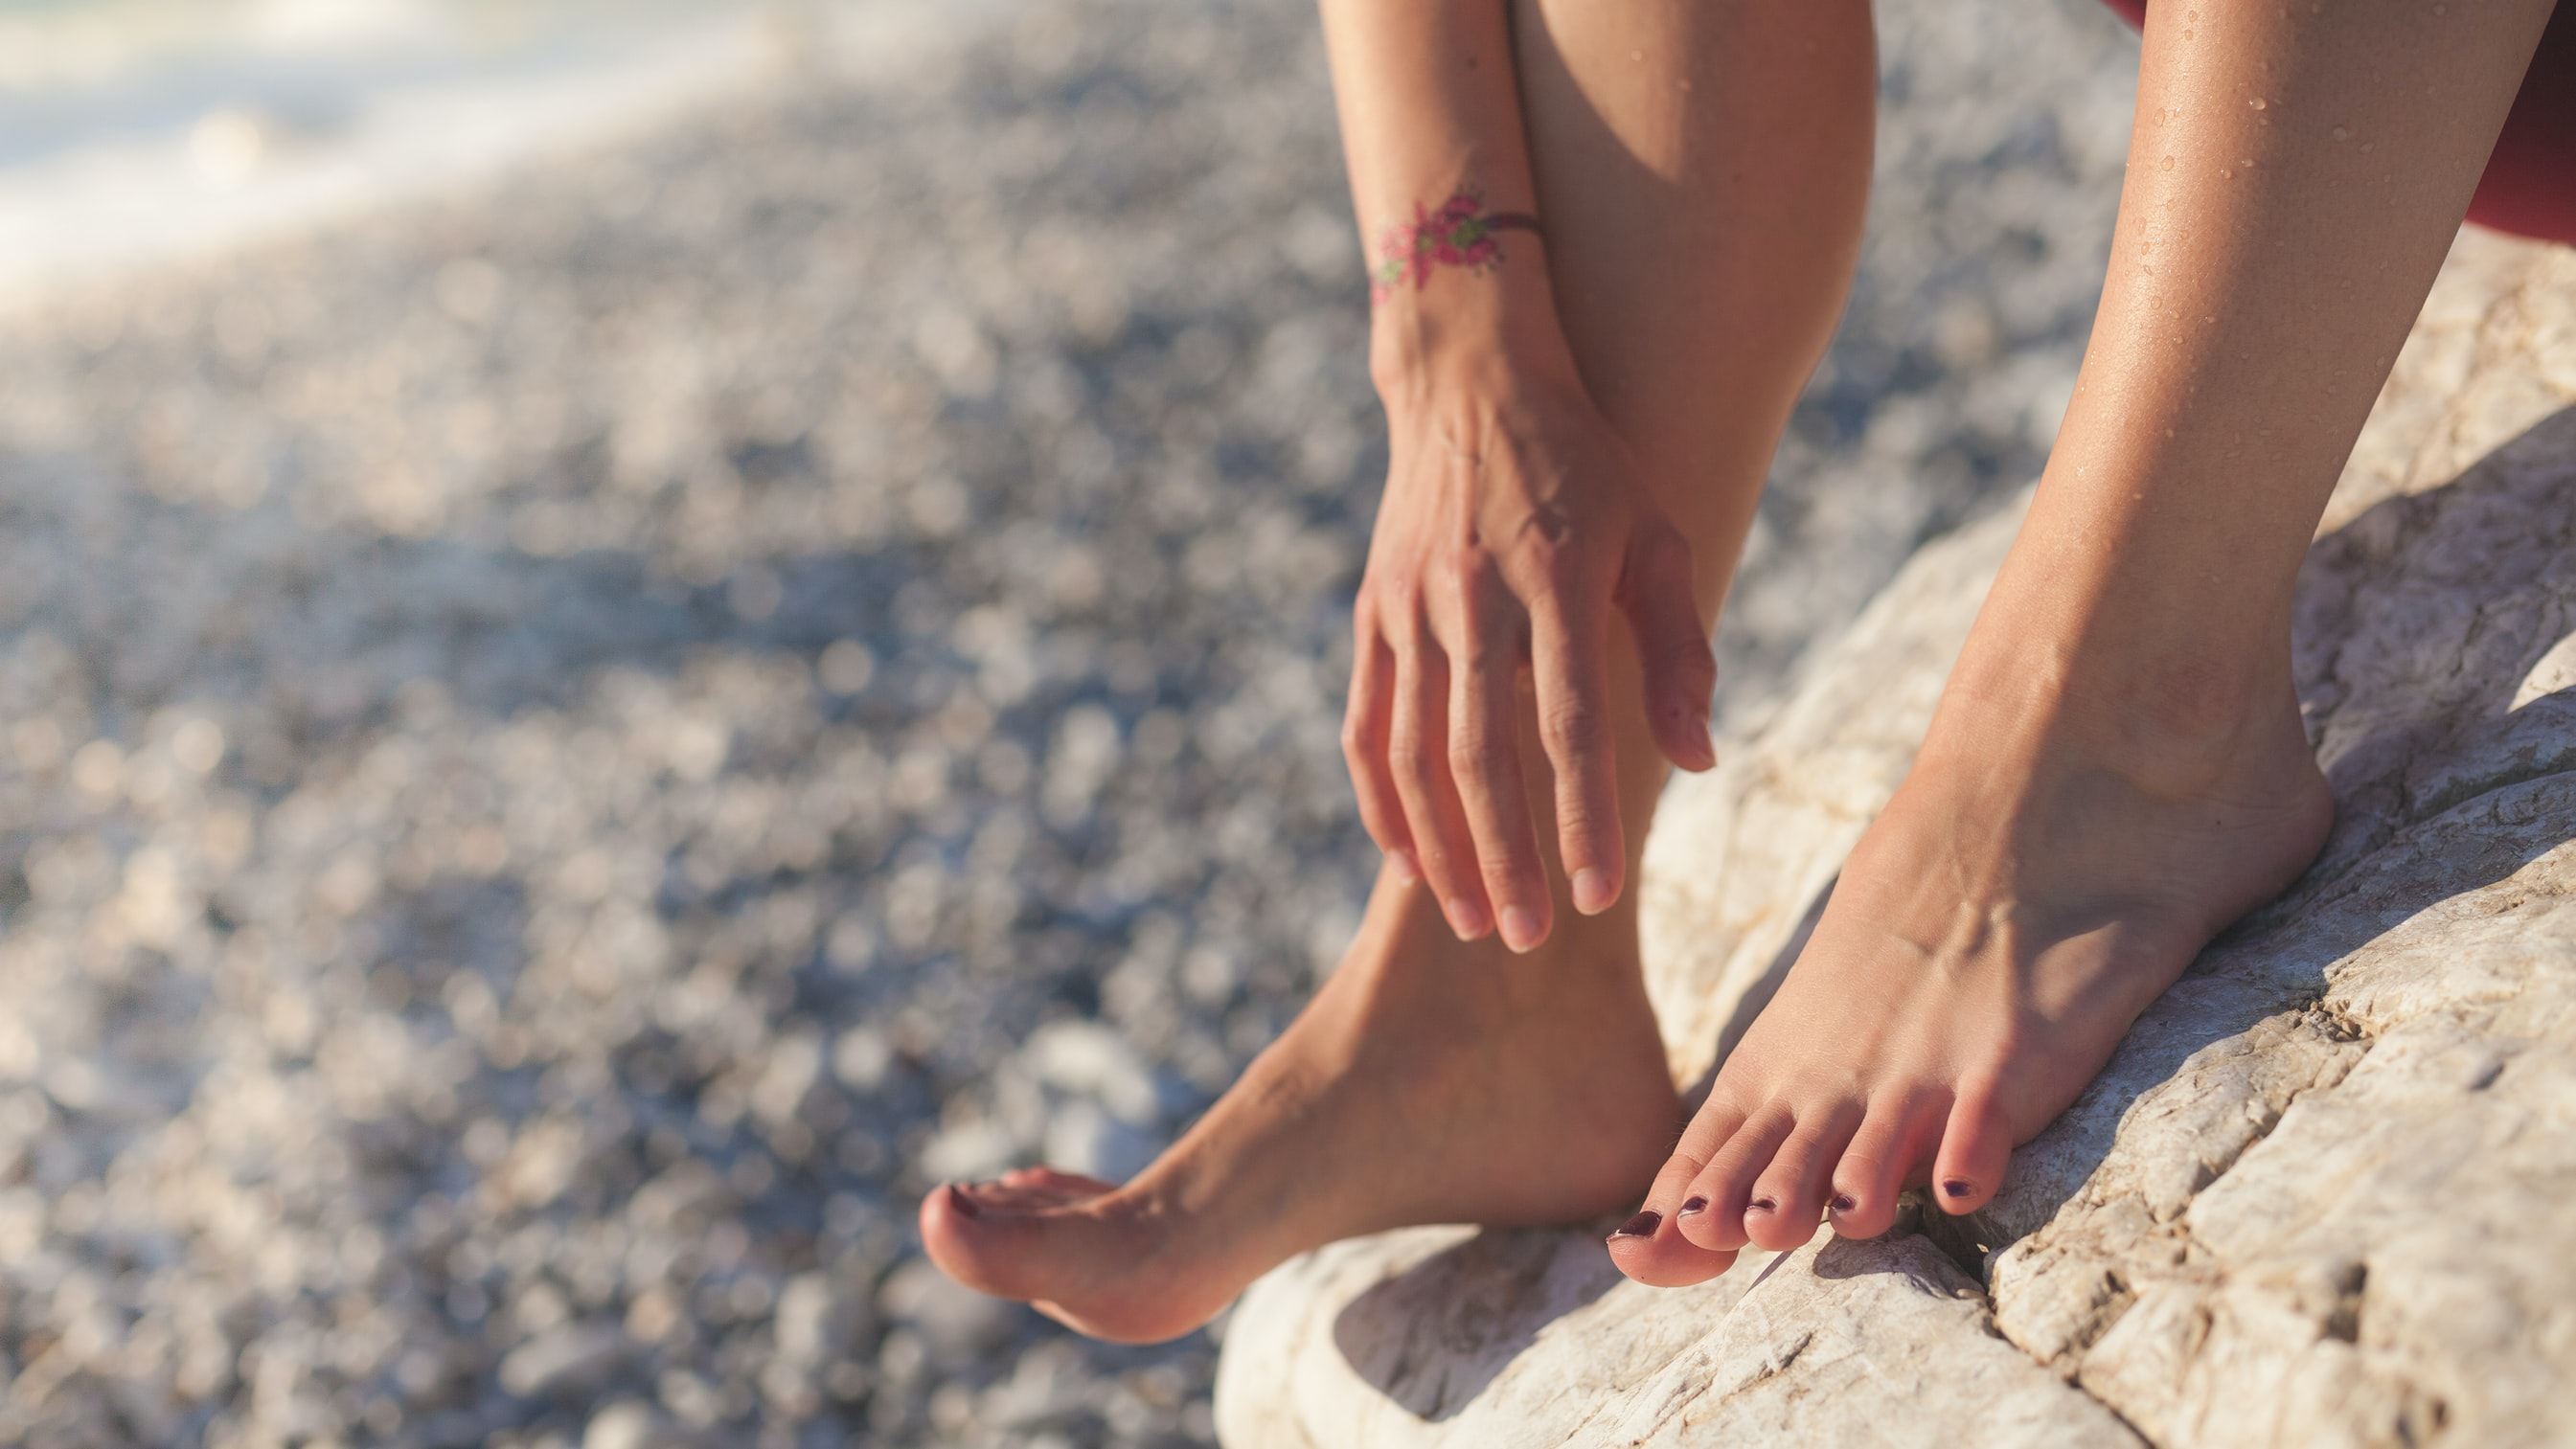 Are There Home Treatments for Neuromas of the Feet?